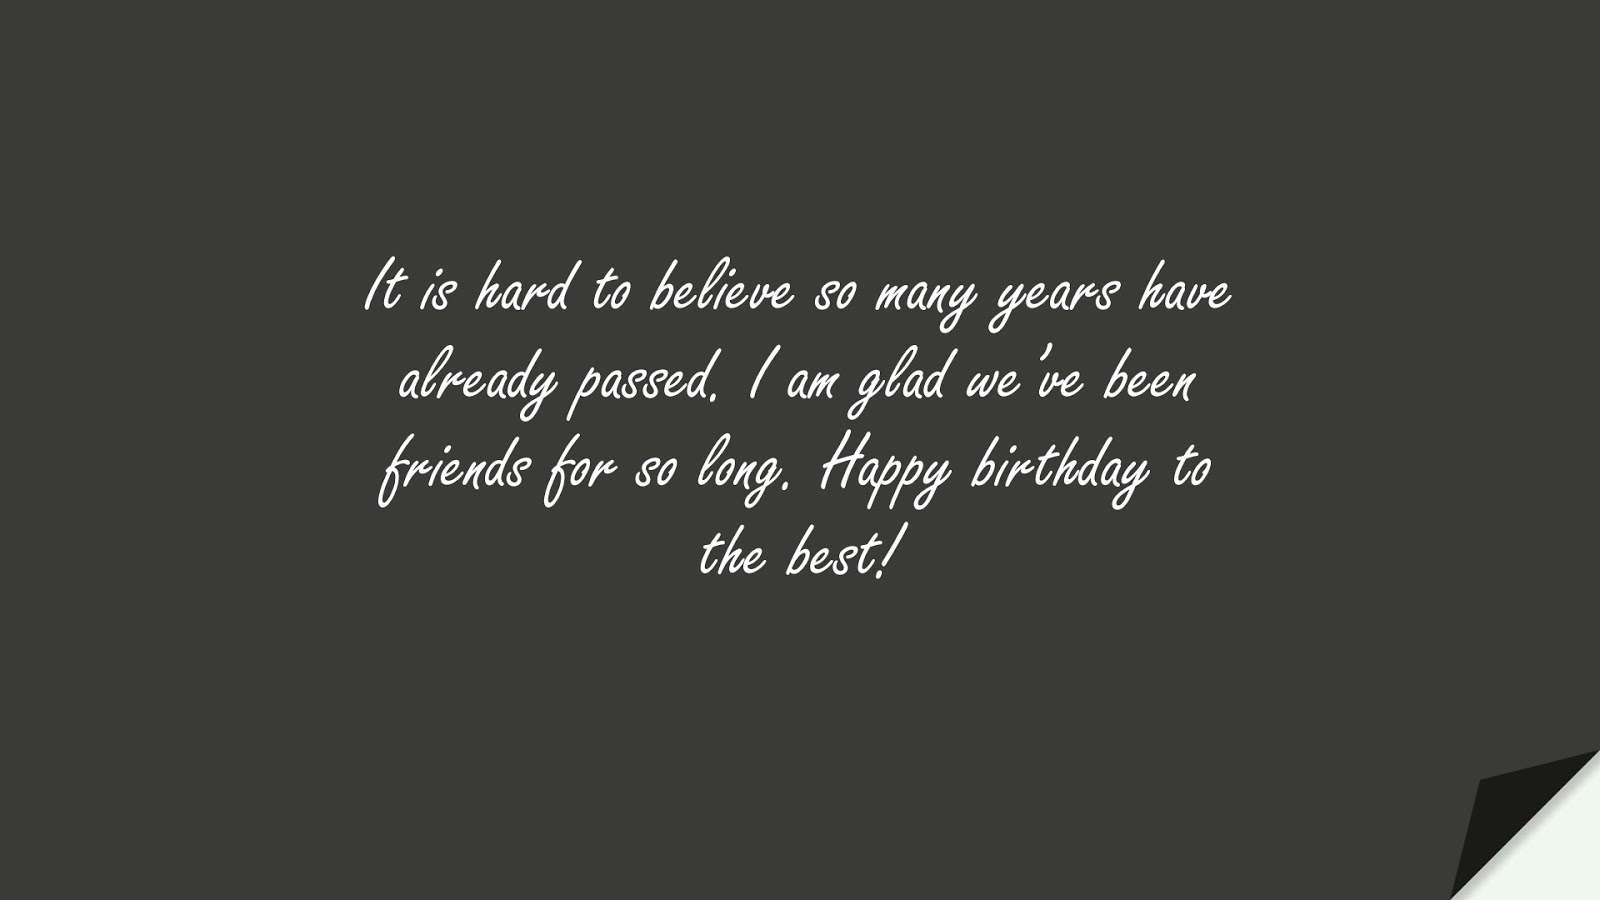 It is hard to believe so many years have already passed. I am glad we've been friends for so long. Happy birthday to the best!FALSE